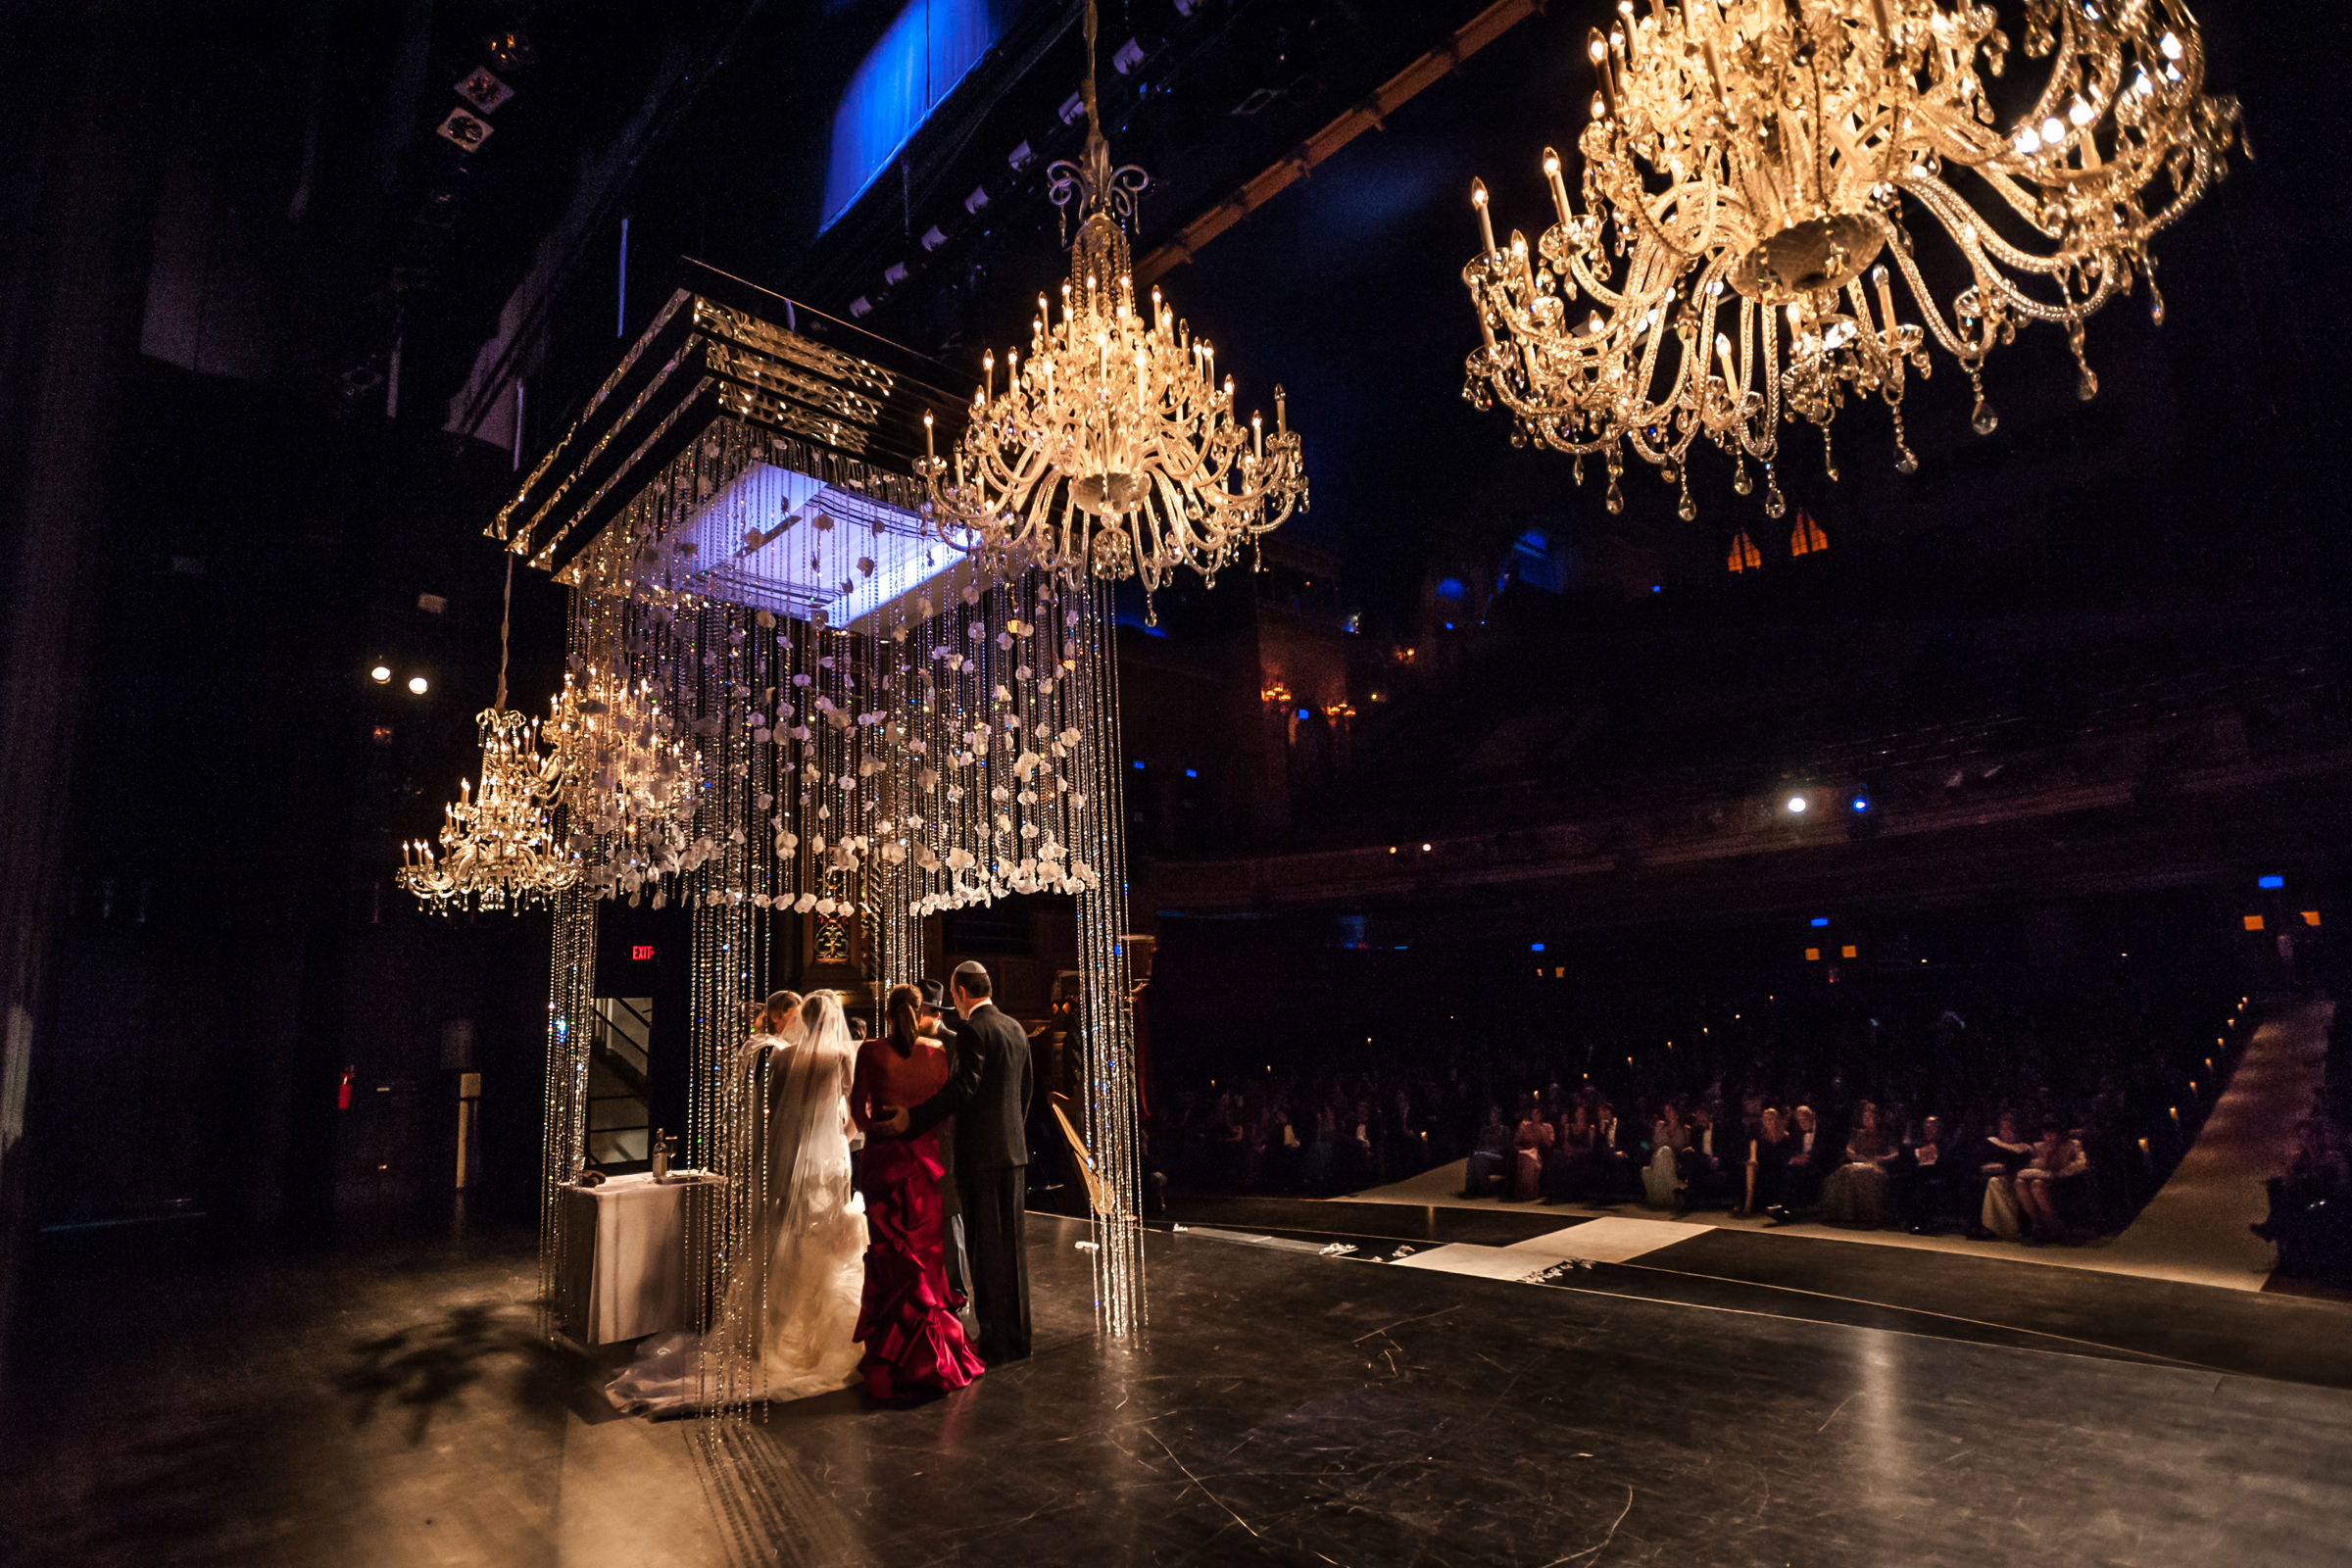 jewish-ceremony-under-elaborate-crystal-huppah-with-chandeliers-in-theatre.jpg